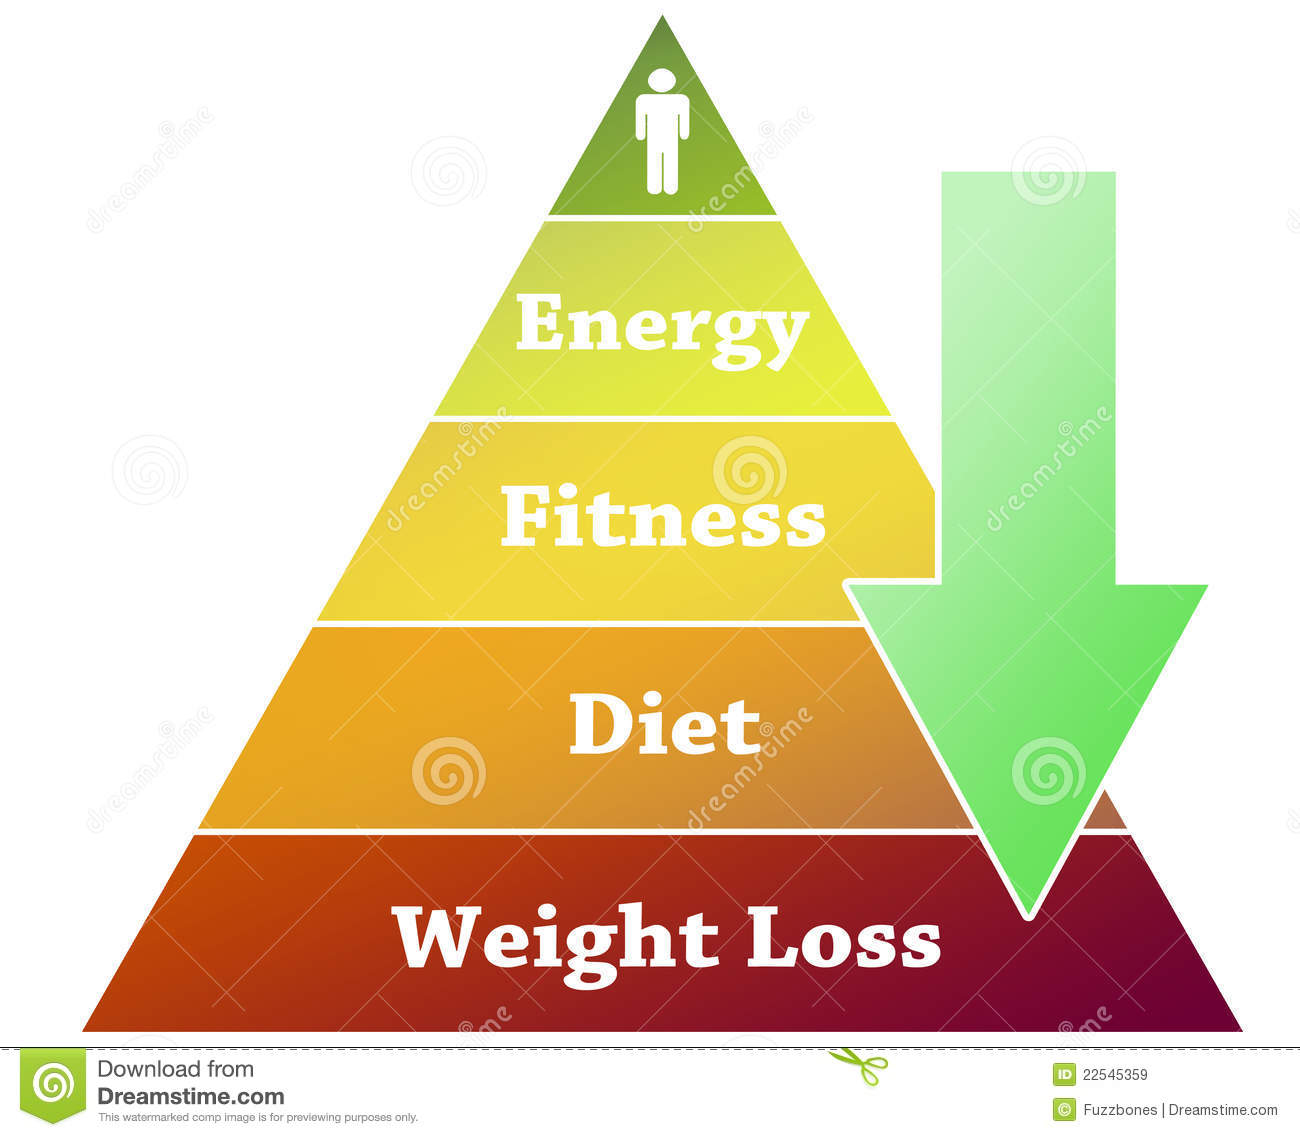 Weight Loss Pyramid Illustration Royalty Free Stock Images ...